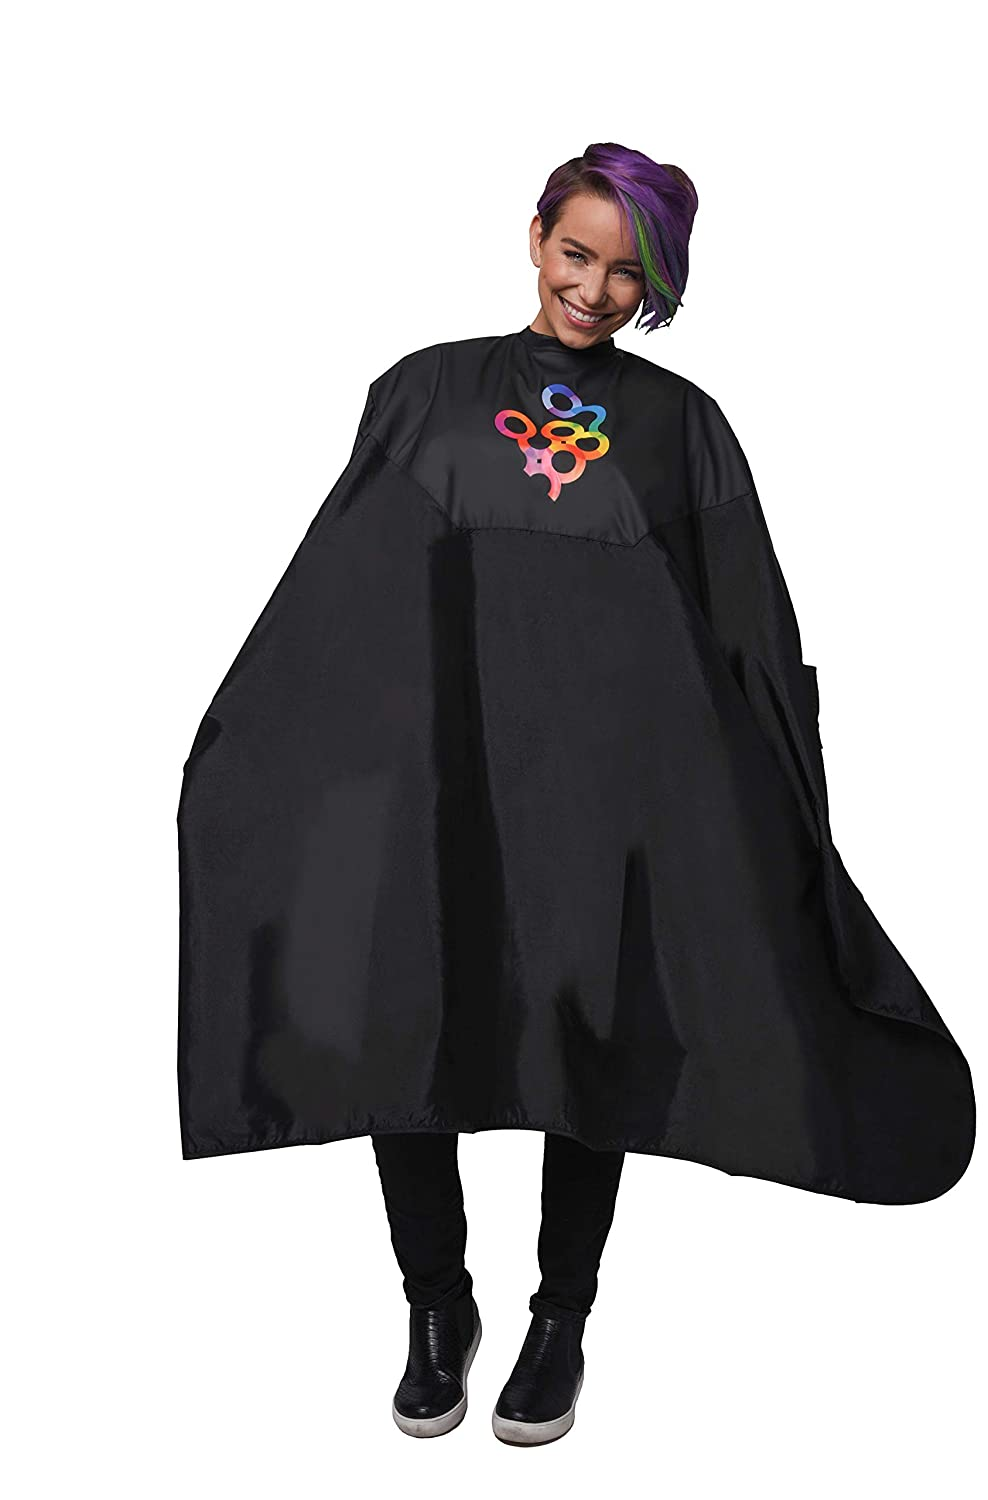 Framar Color Cover - Salon Cape With Rubberized Chest and Neckline, Hair Cape for Hair Dye, Hair Color, Cosmetology Supplies and Hair Coloring